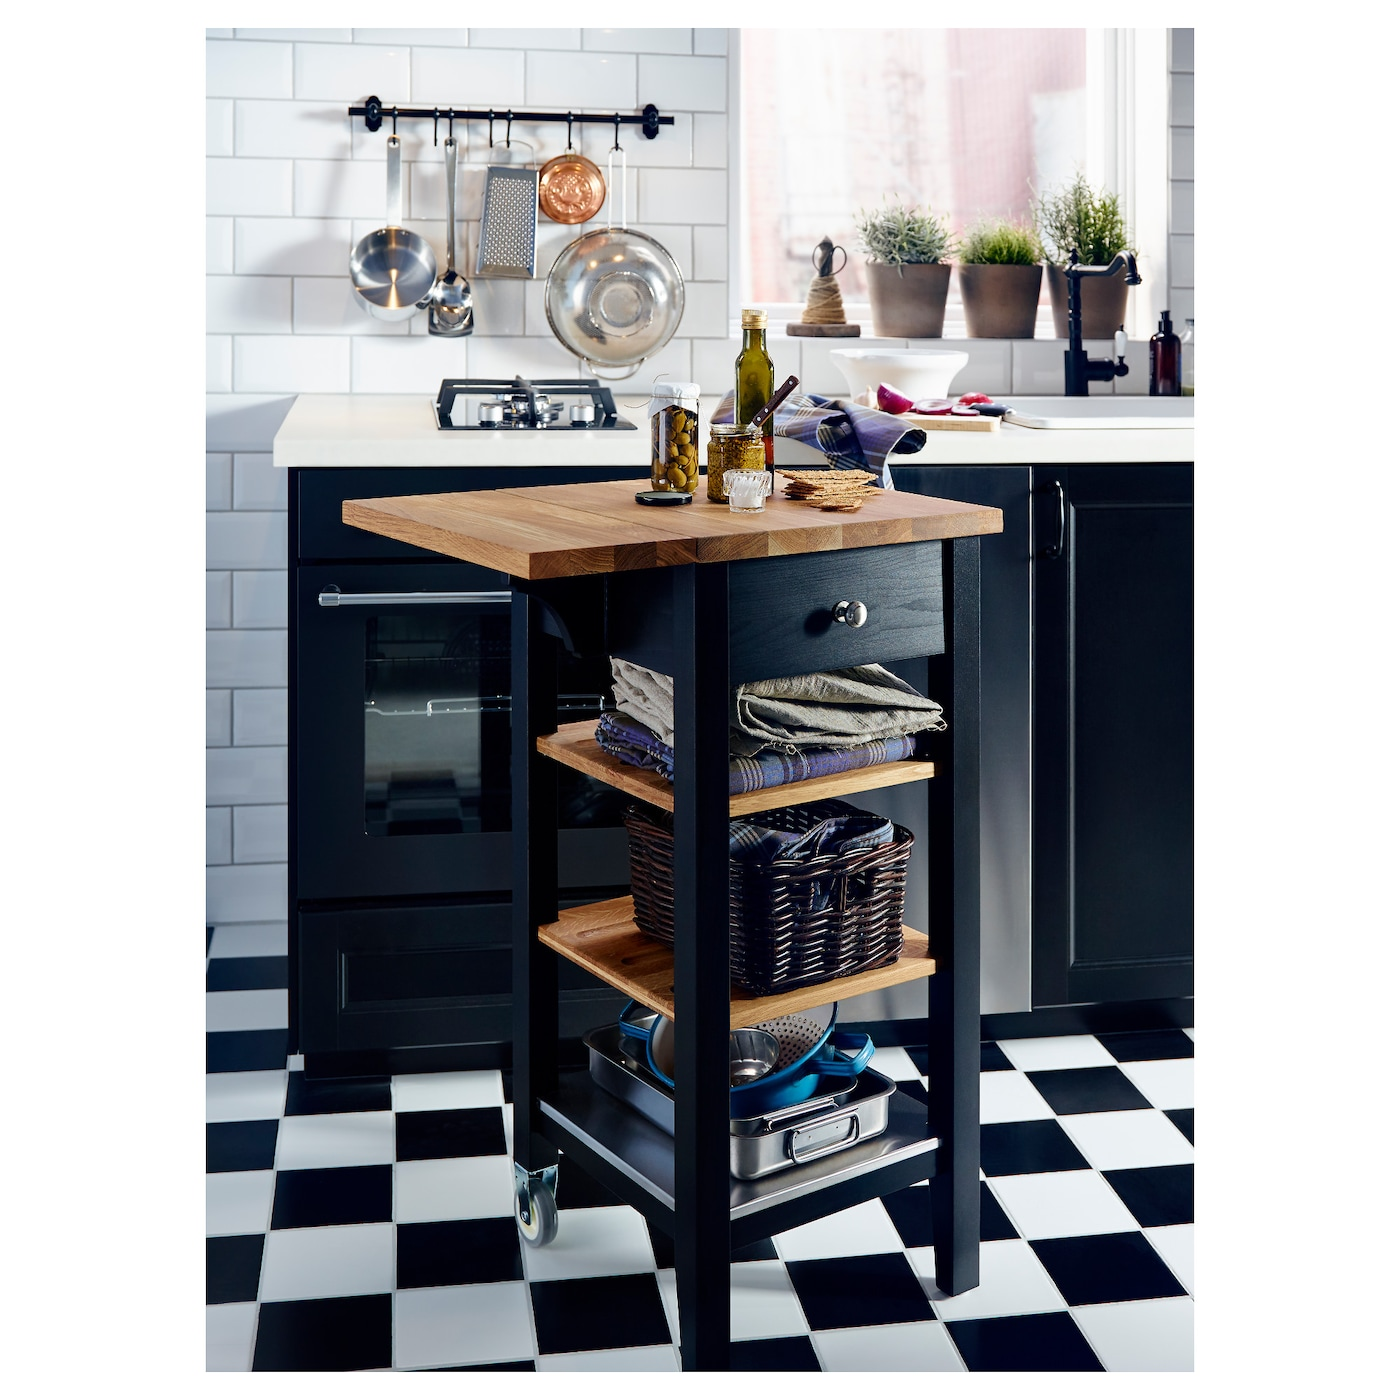 Stenstorp kitchen trolley black brown oak 45x43x90 cm ikea for Kitchen cart island ikea